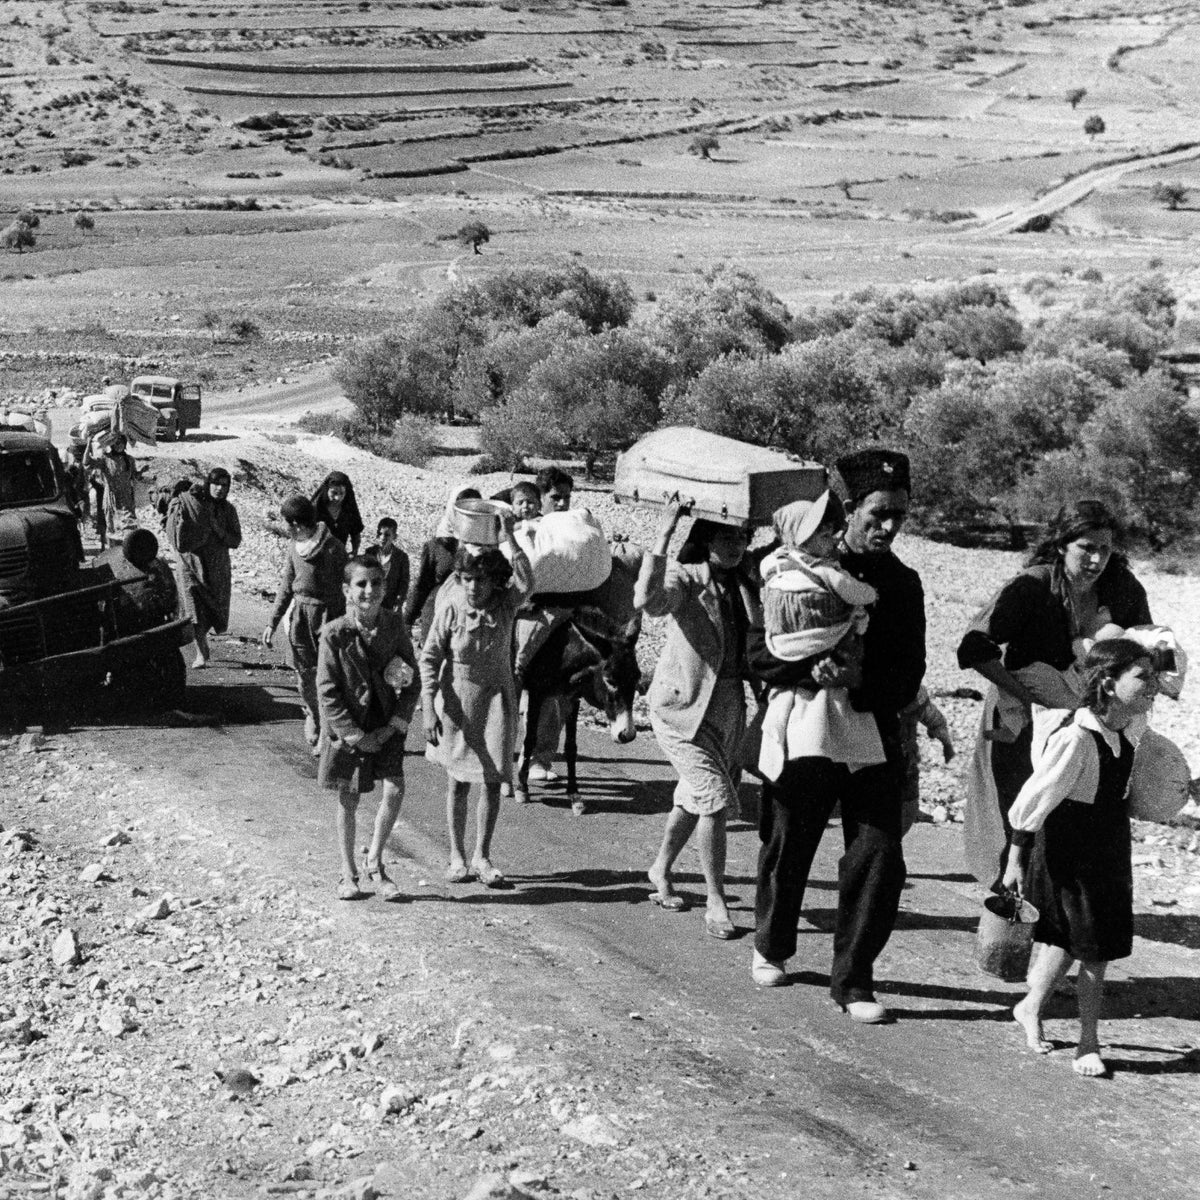 Arab refugees stream from Palestine on the Lebanon Road, Nov. 4, 1948. These are Arab villagers who fled from their homes during the recent fighting in Galilee between Israel and Arab troops.